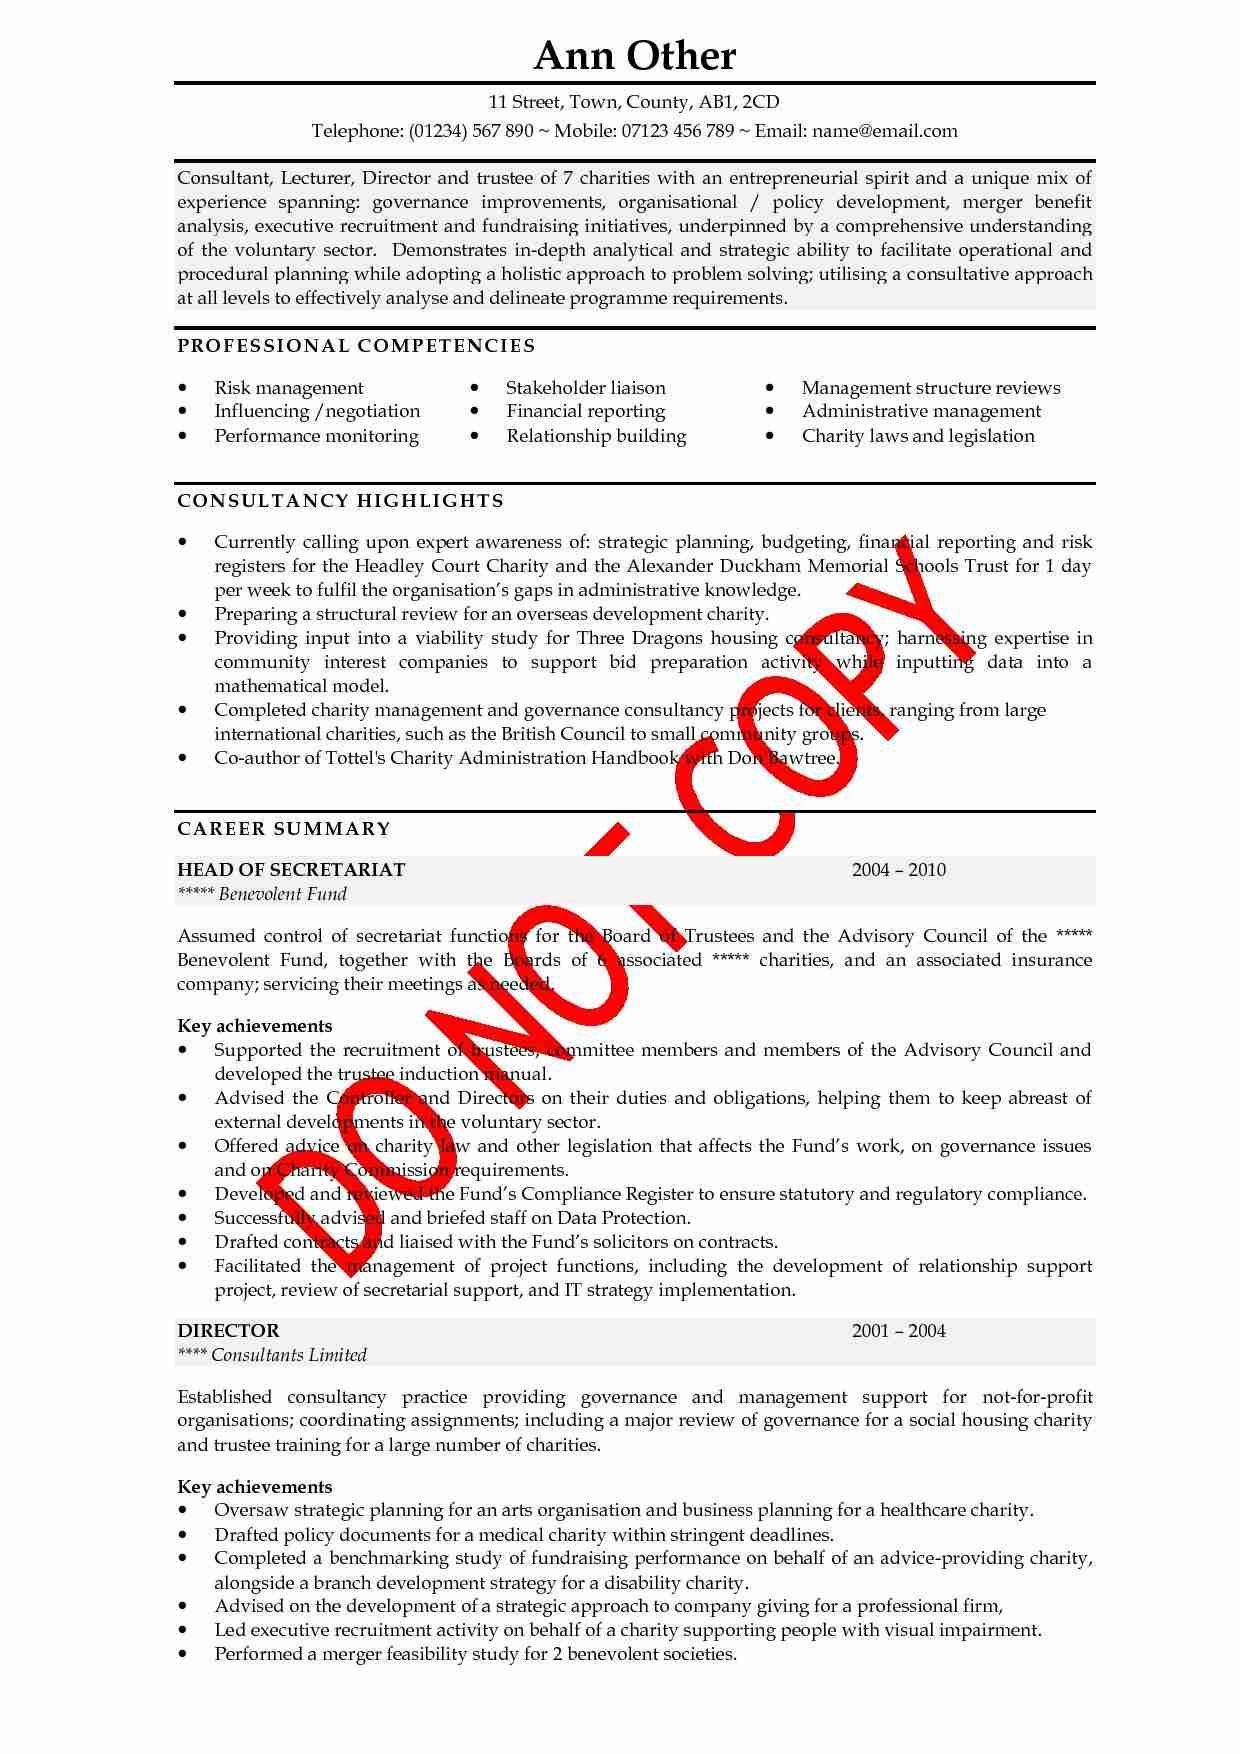 how to write a detailed cv tk category curriculum vitae